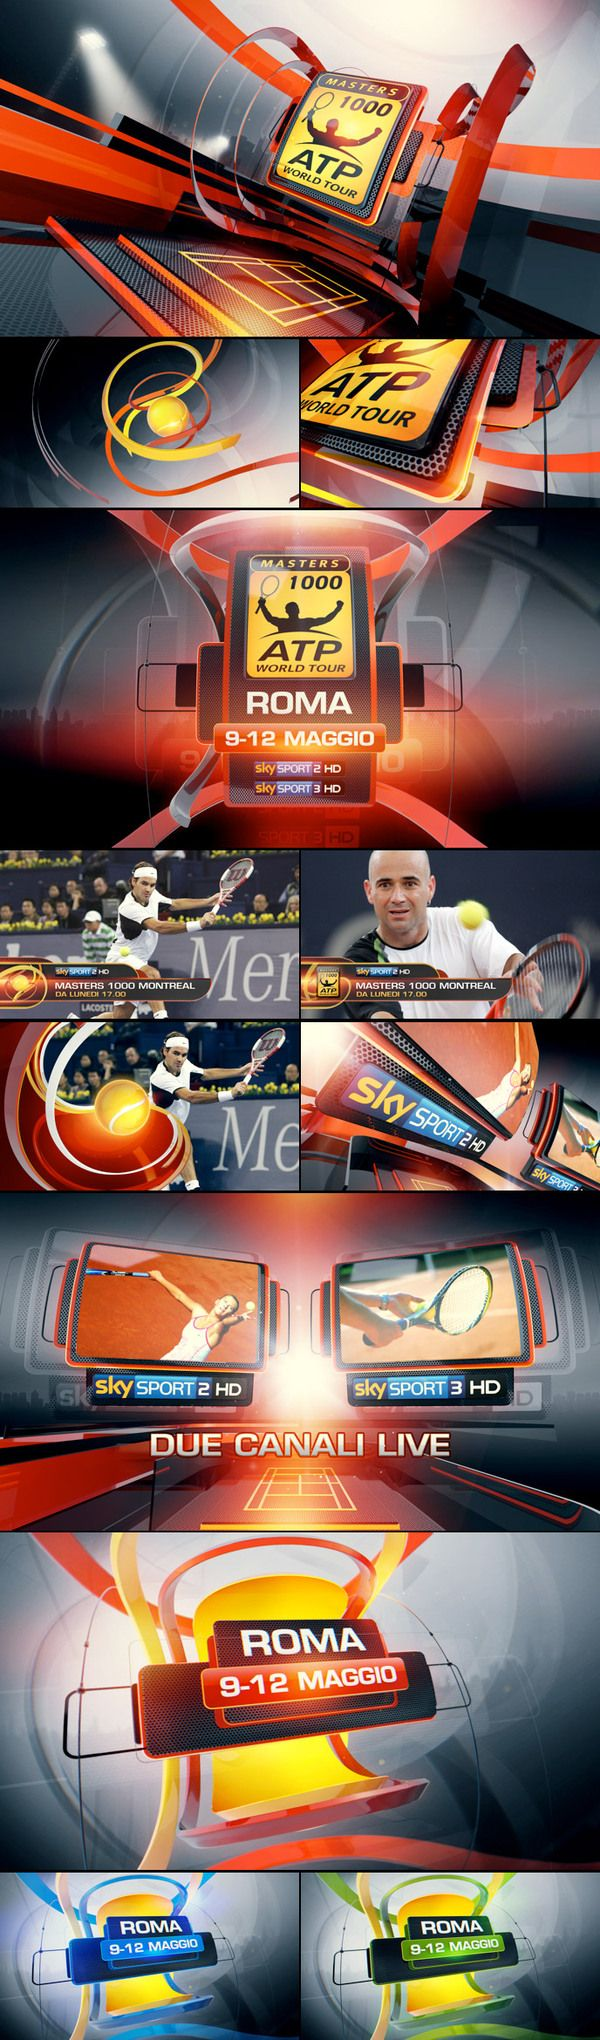 SkySport promo toolkit by Angelsign Studio , via Behance